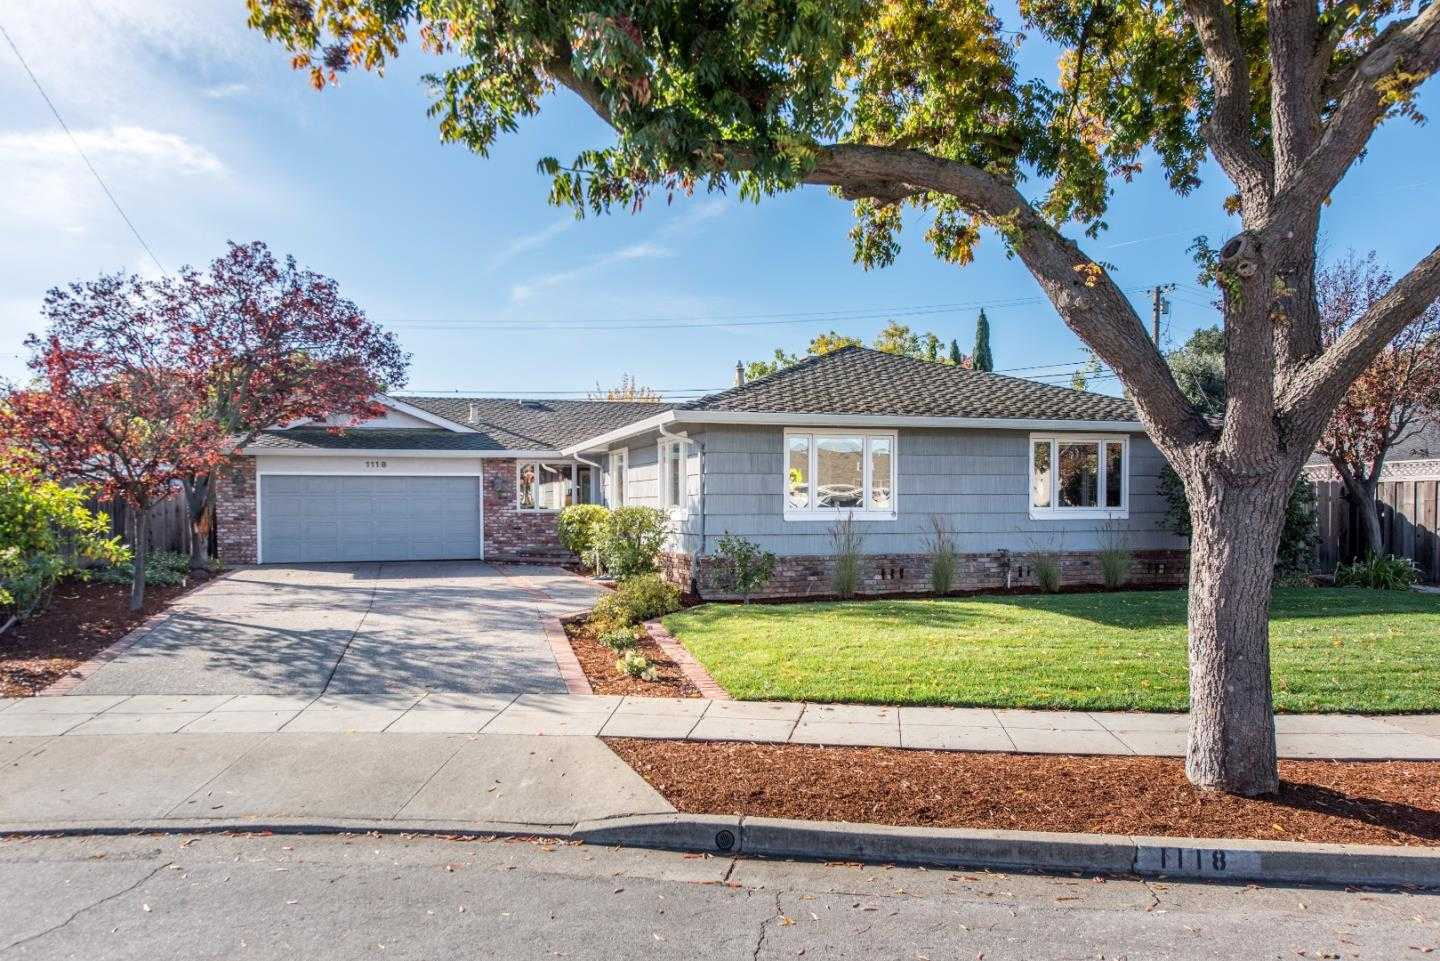 $1,998,000 - 5Br/3Ba -  for Sale in Sunnyvale